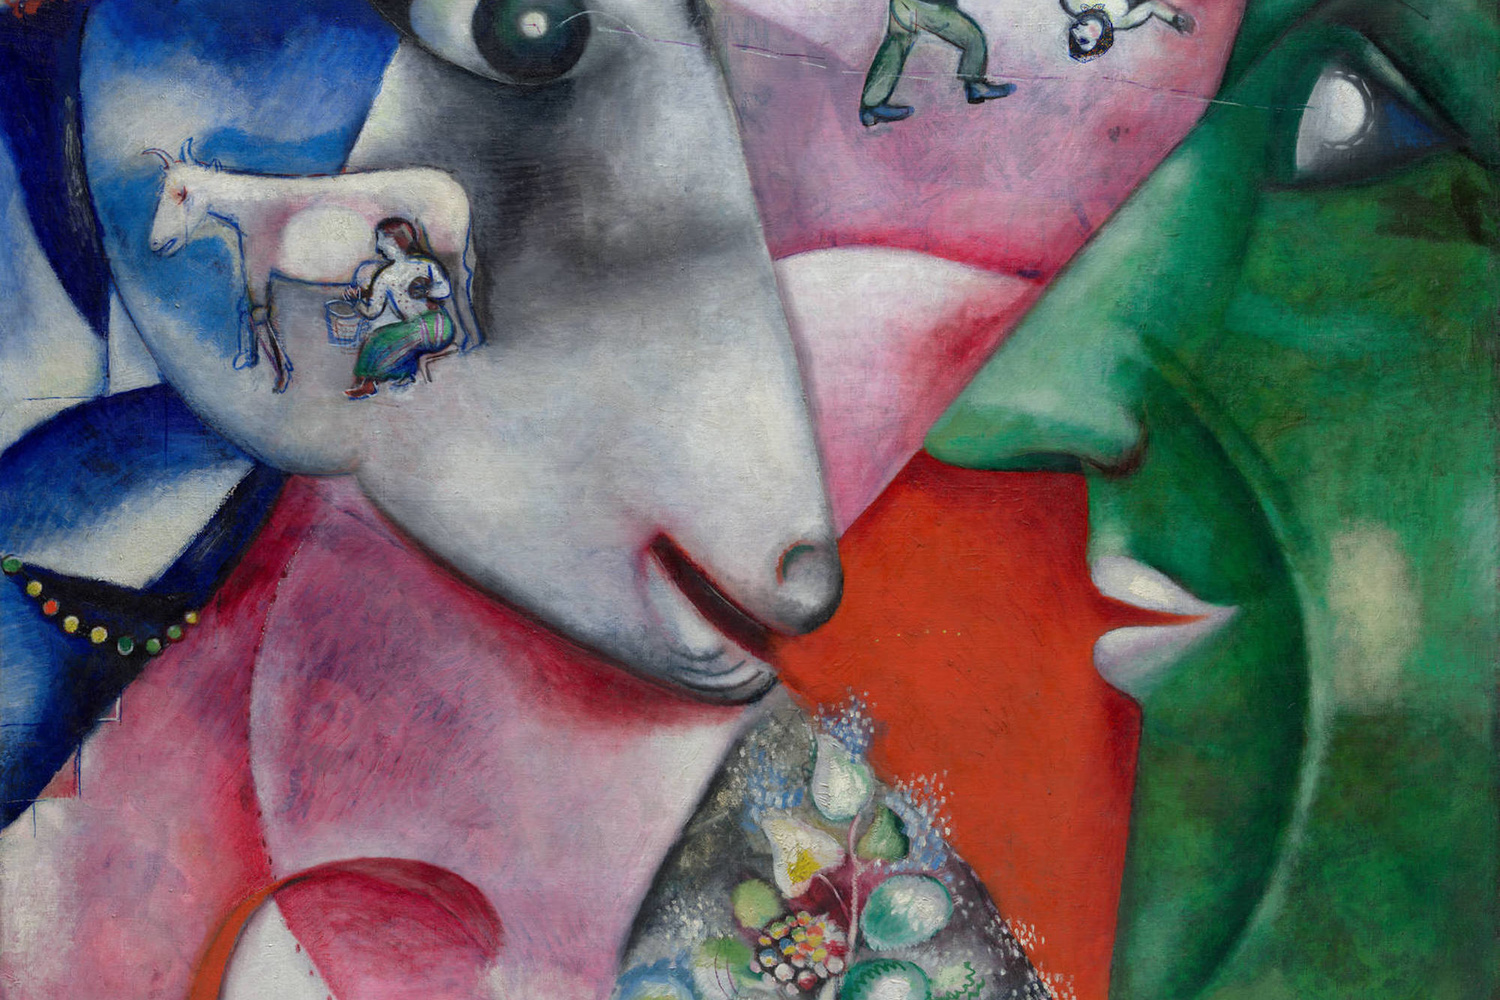 "Marc Chagall. I and the Village. 1911. Oil on canvas. 6' 3 5/8"" x 59 5/8"" (192.1 x 151.4 cm). Mrs. Simon Guggenheim Fund. © 2019 Artists Rights Society (ARS), New York / ADAGP, Paris"